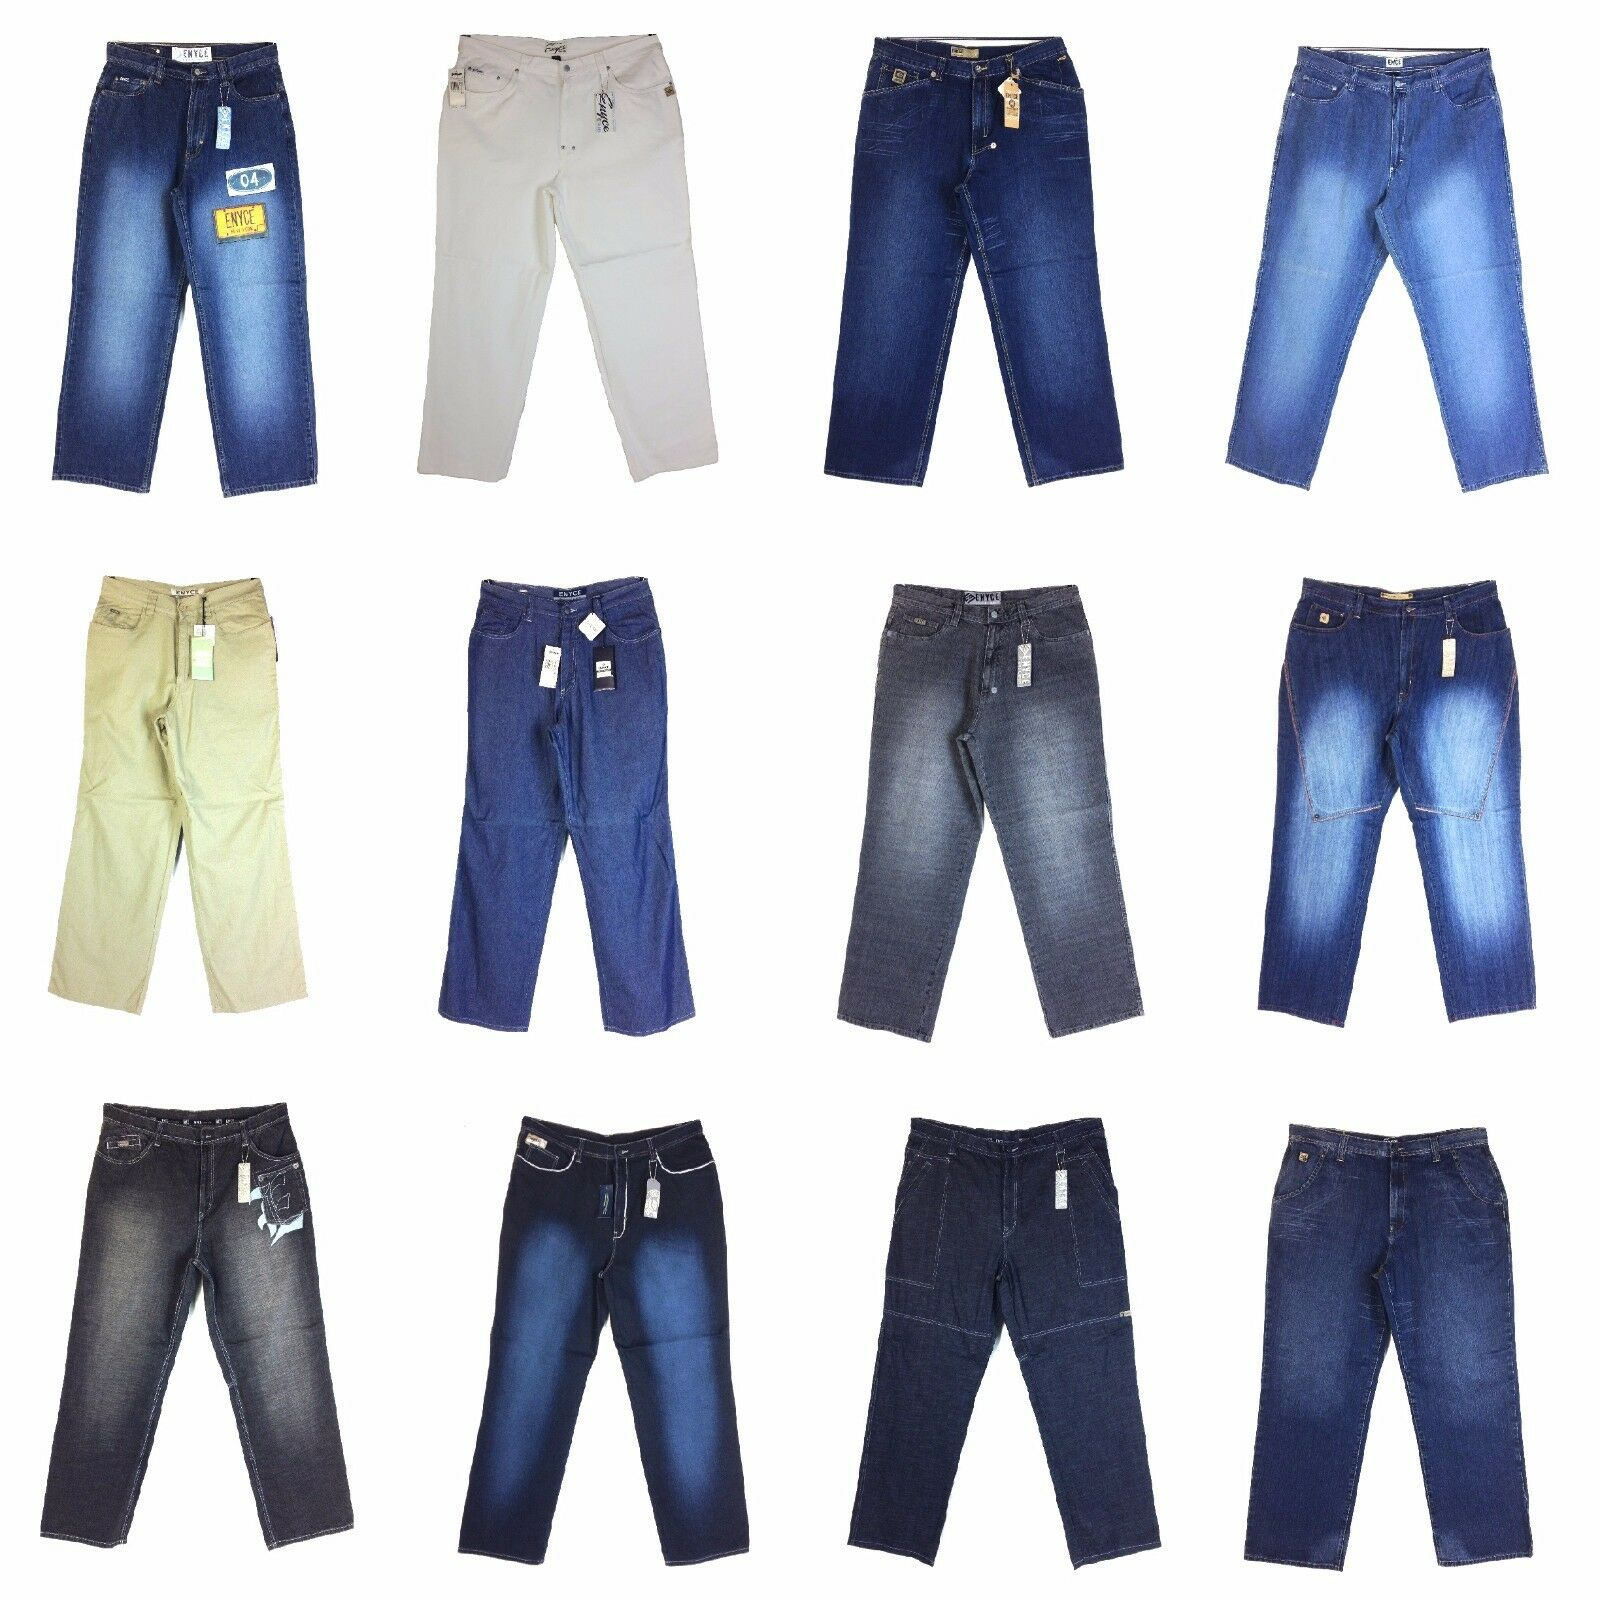 Vintage Enyce Design Men's New Jean, Old school Baggy Styles Assorted, Group [2]